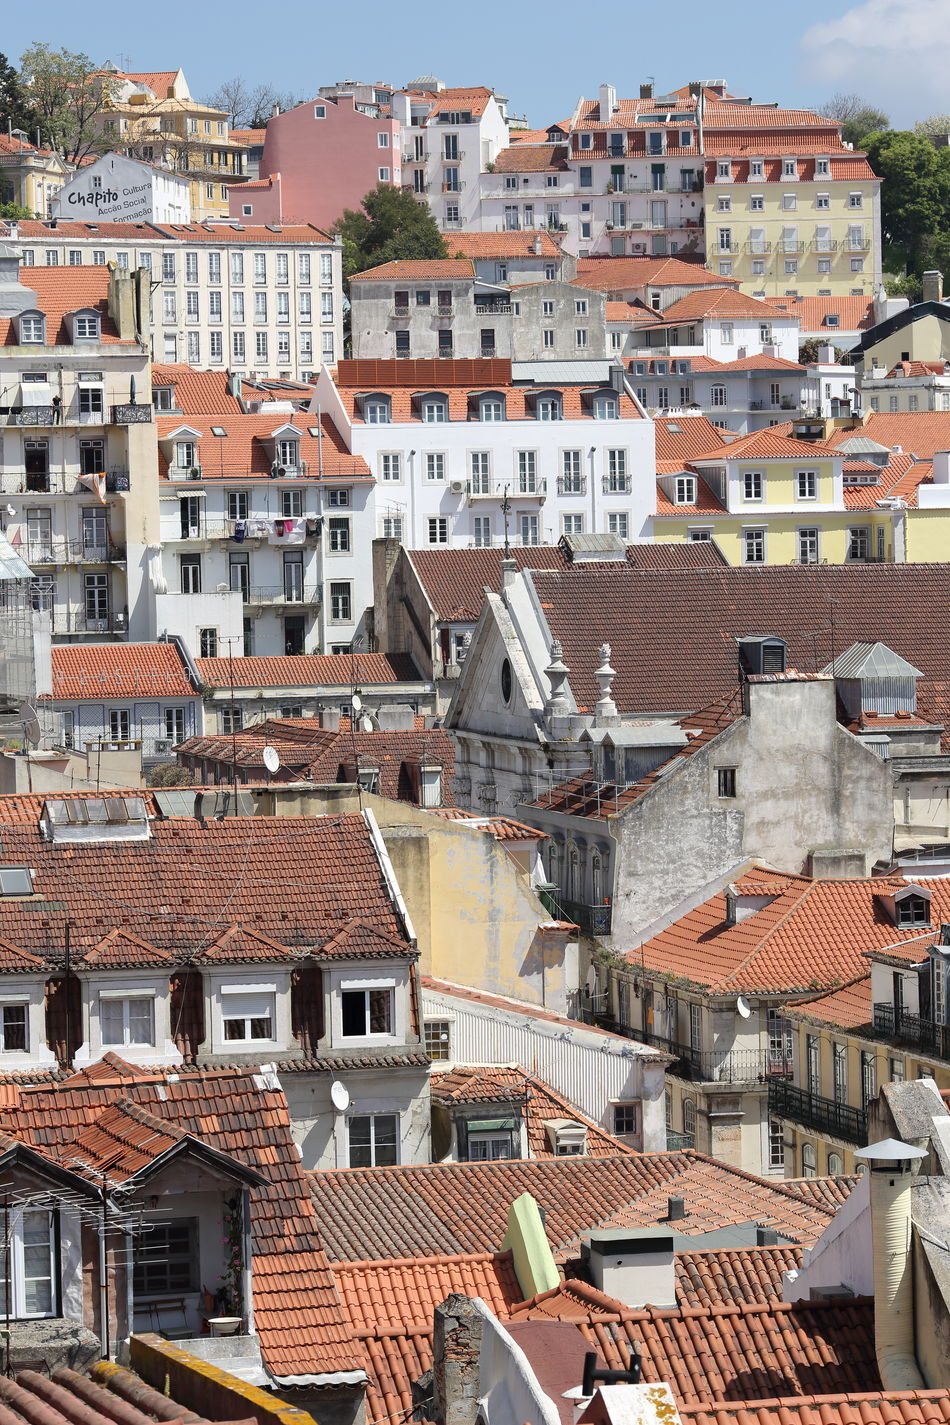 Lisbon cityscape with tiled rooftops Architecture Building Exterior Built Structure Capital Cities  City Cityscape Cityscape Crowded Day Europe House Lisbon Lissabon Outdoors Portugal Residential Building Roof Streetphotography Tiled Roof  Tourism Town Travel Destinations TRENDING  Trip